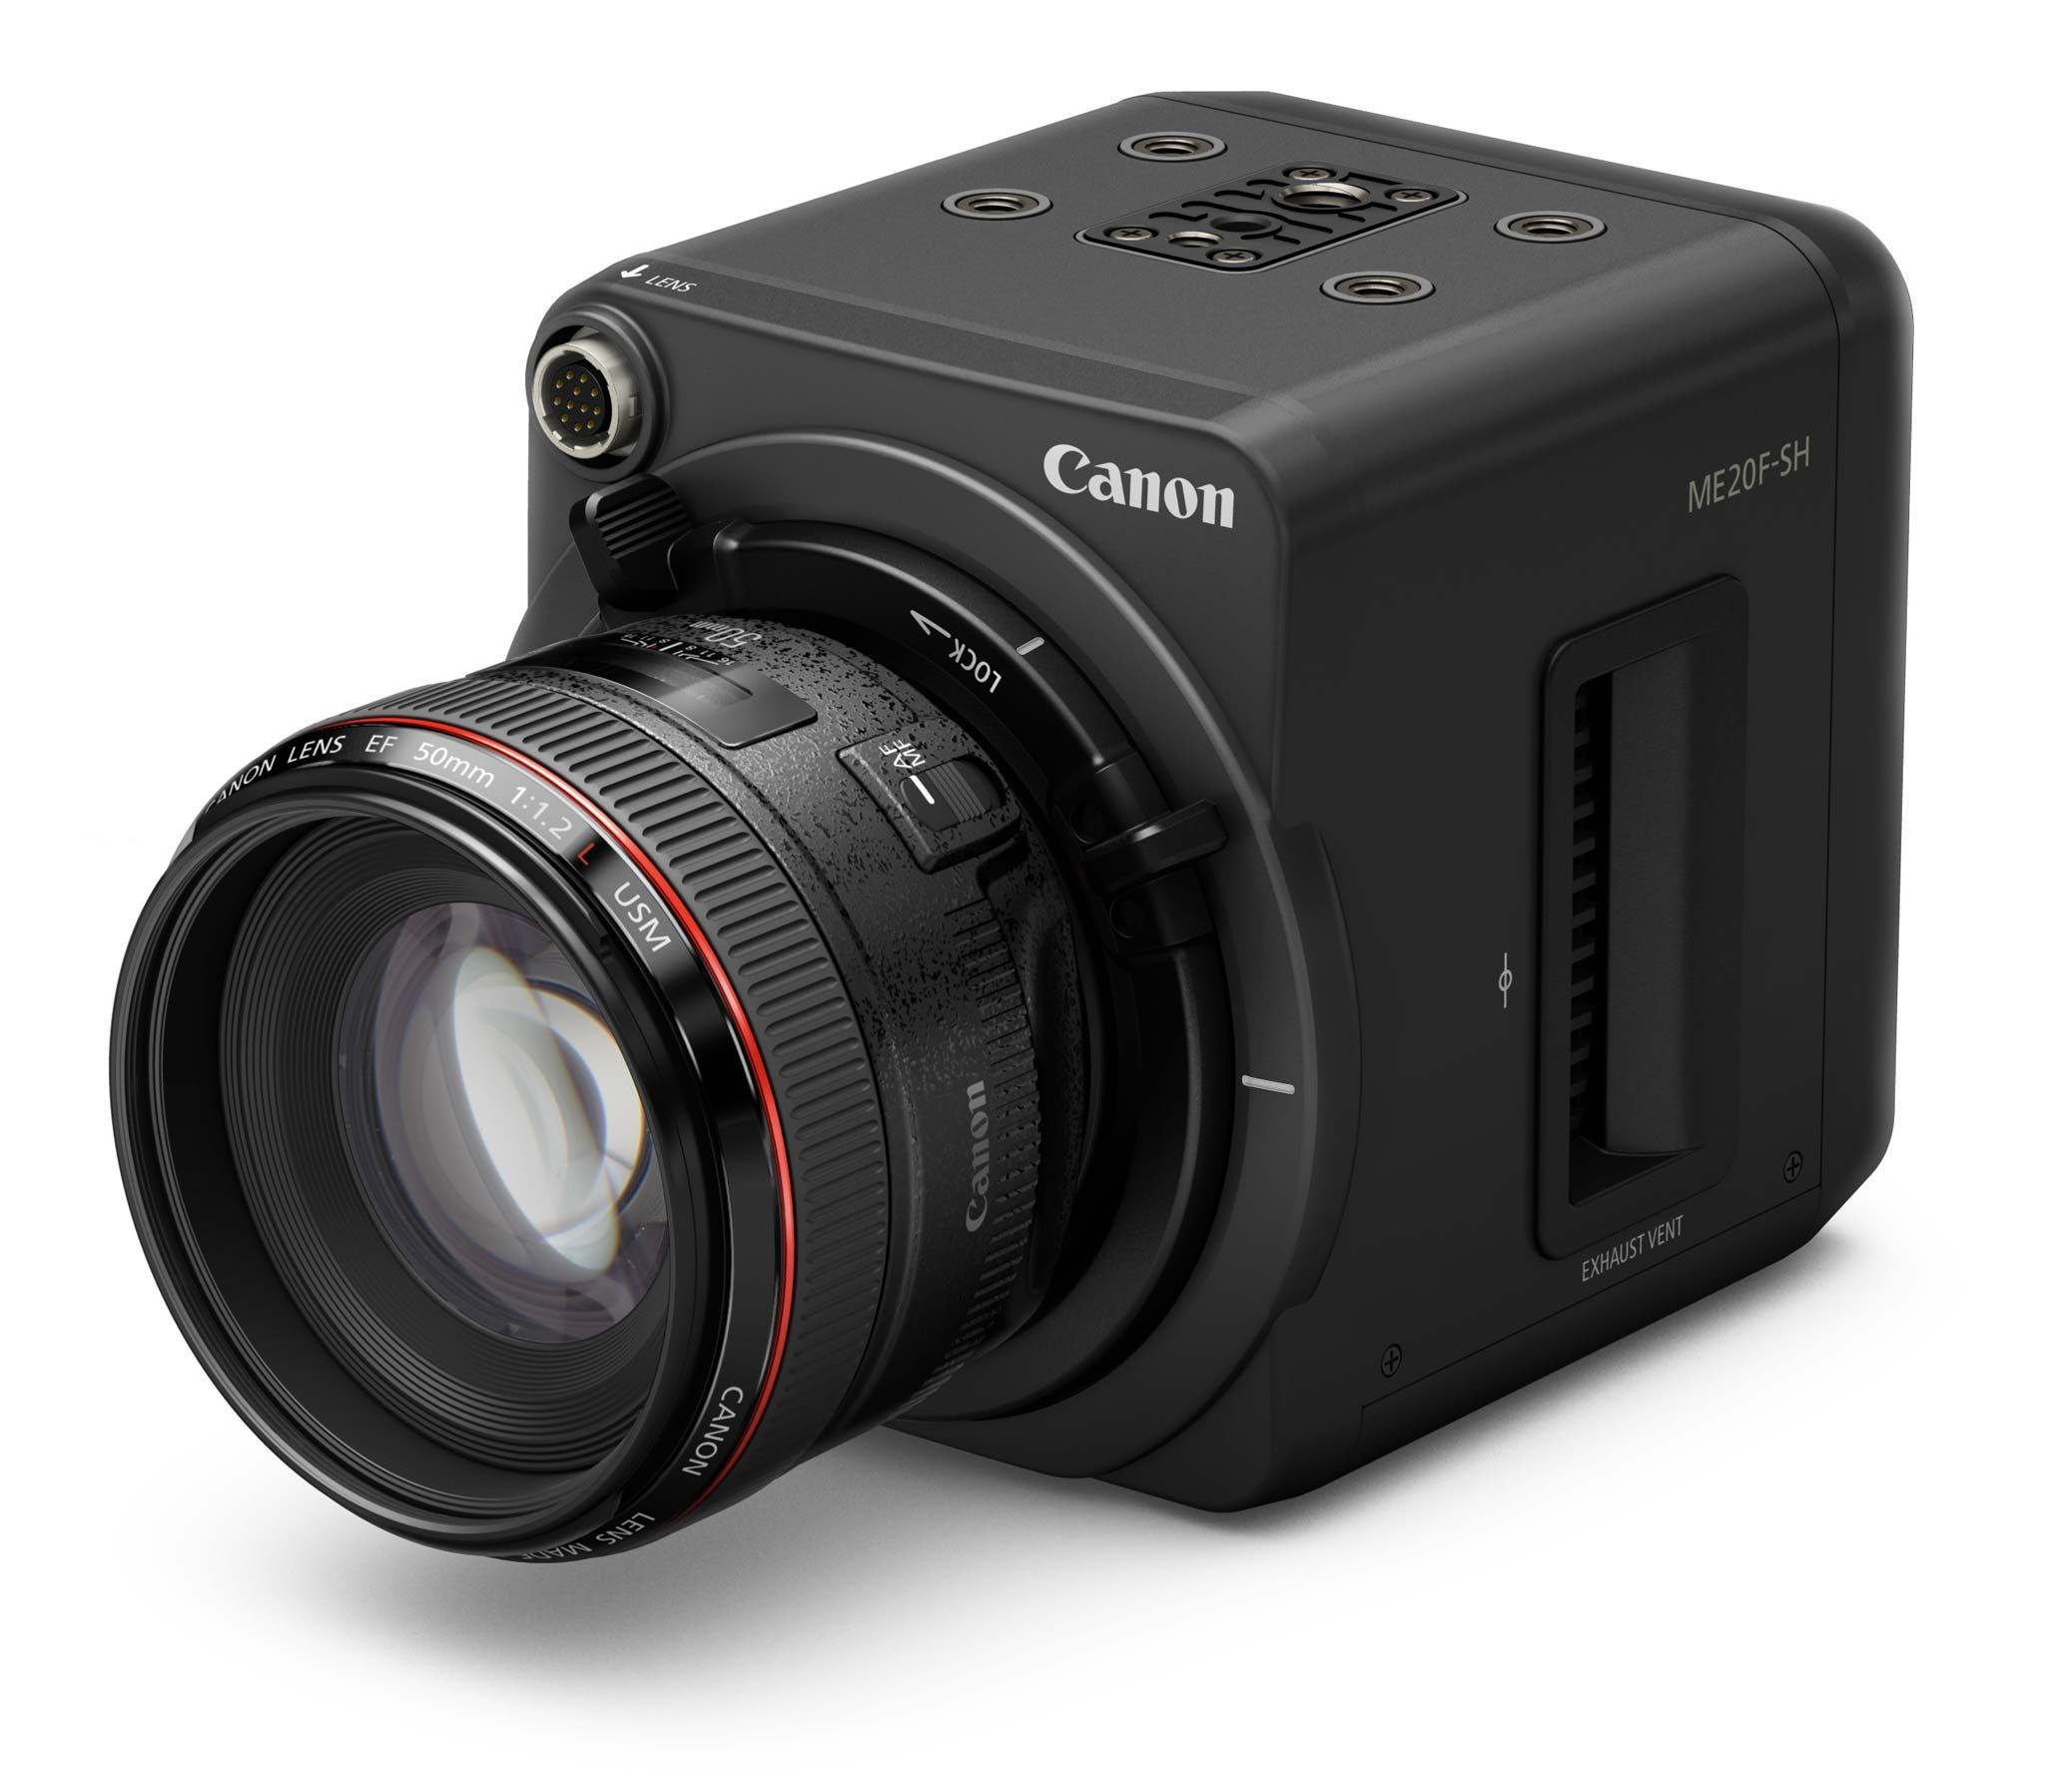 canonme20f shlens